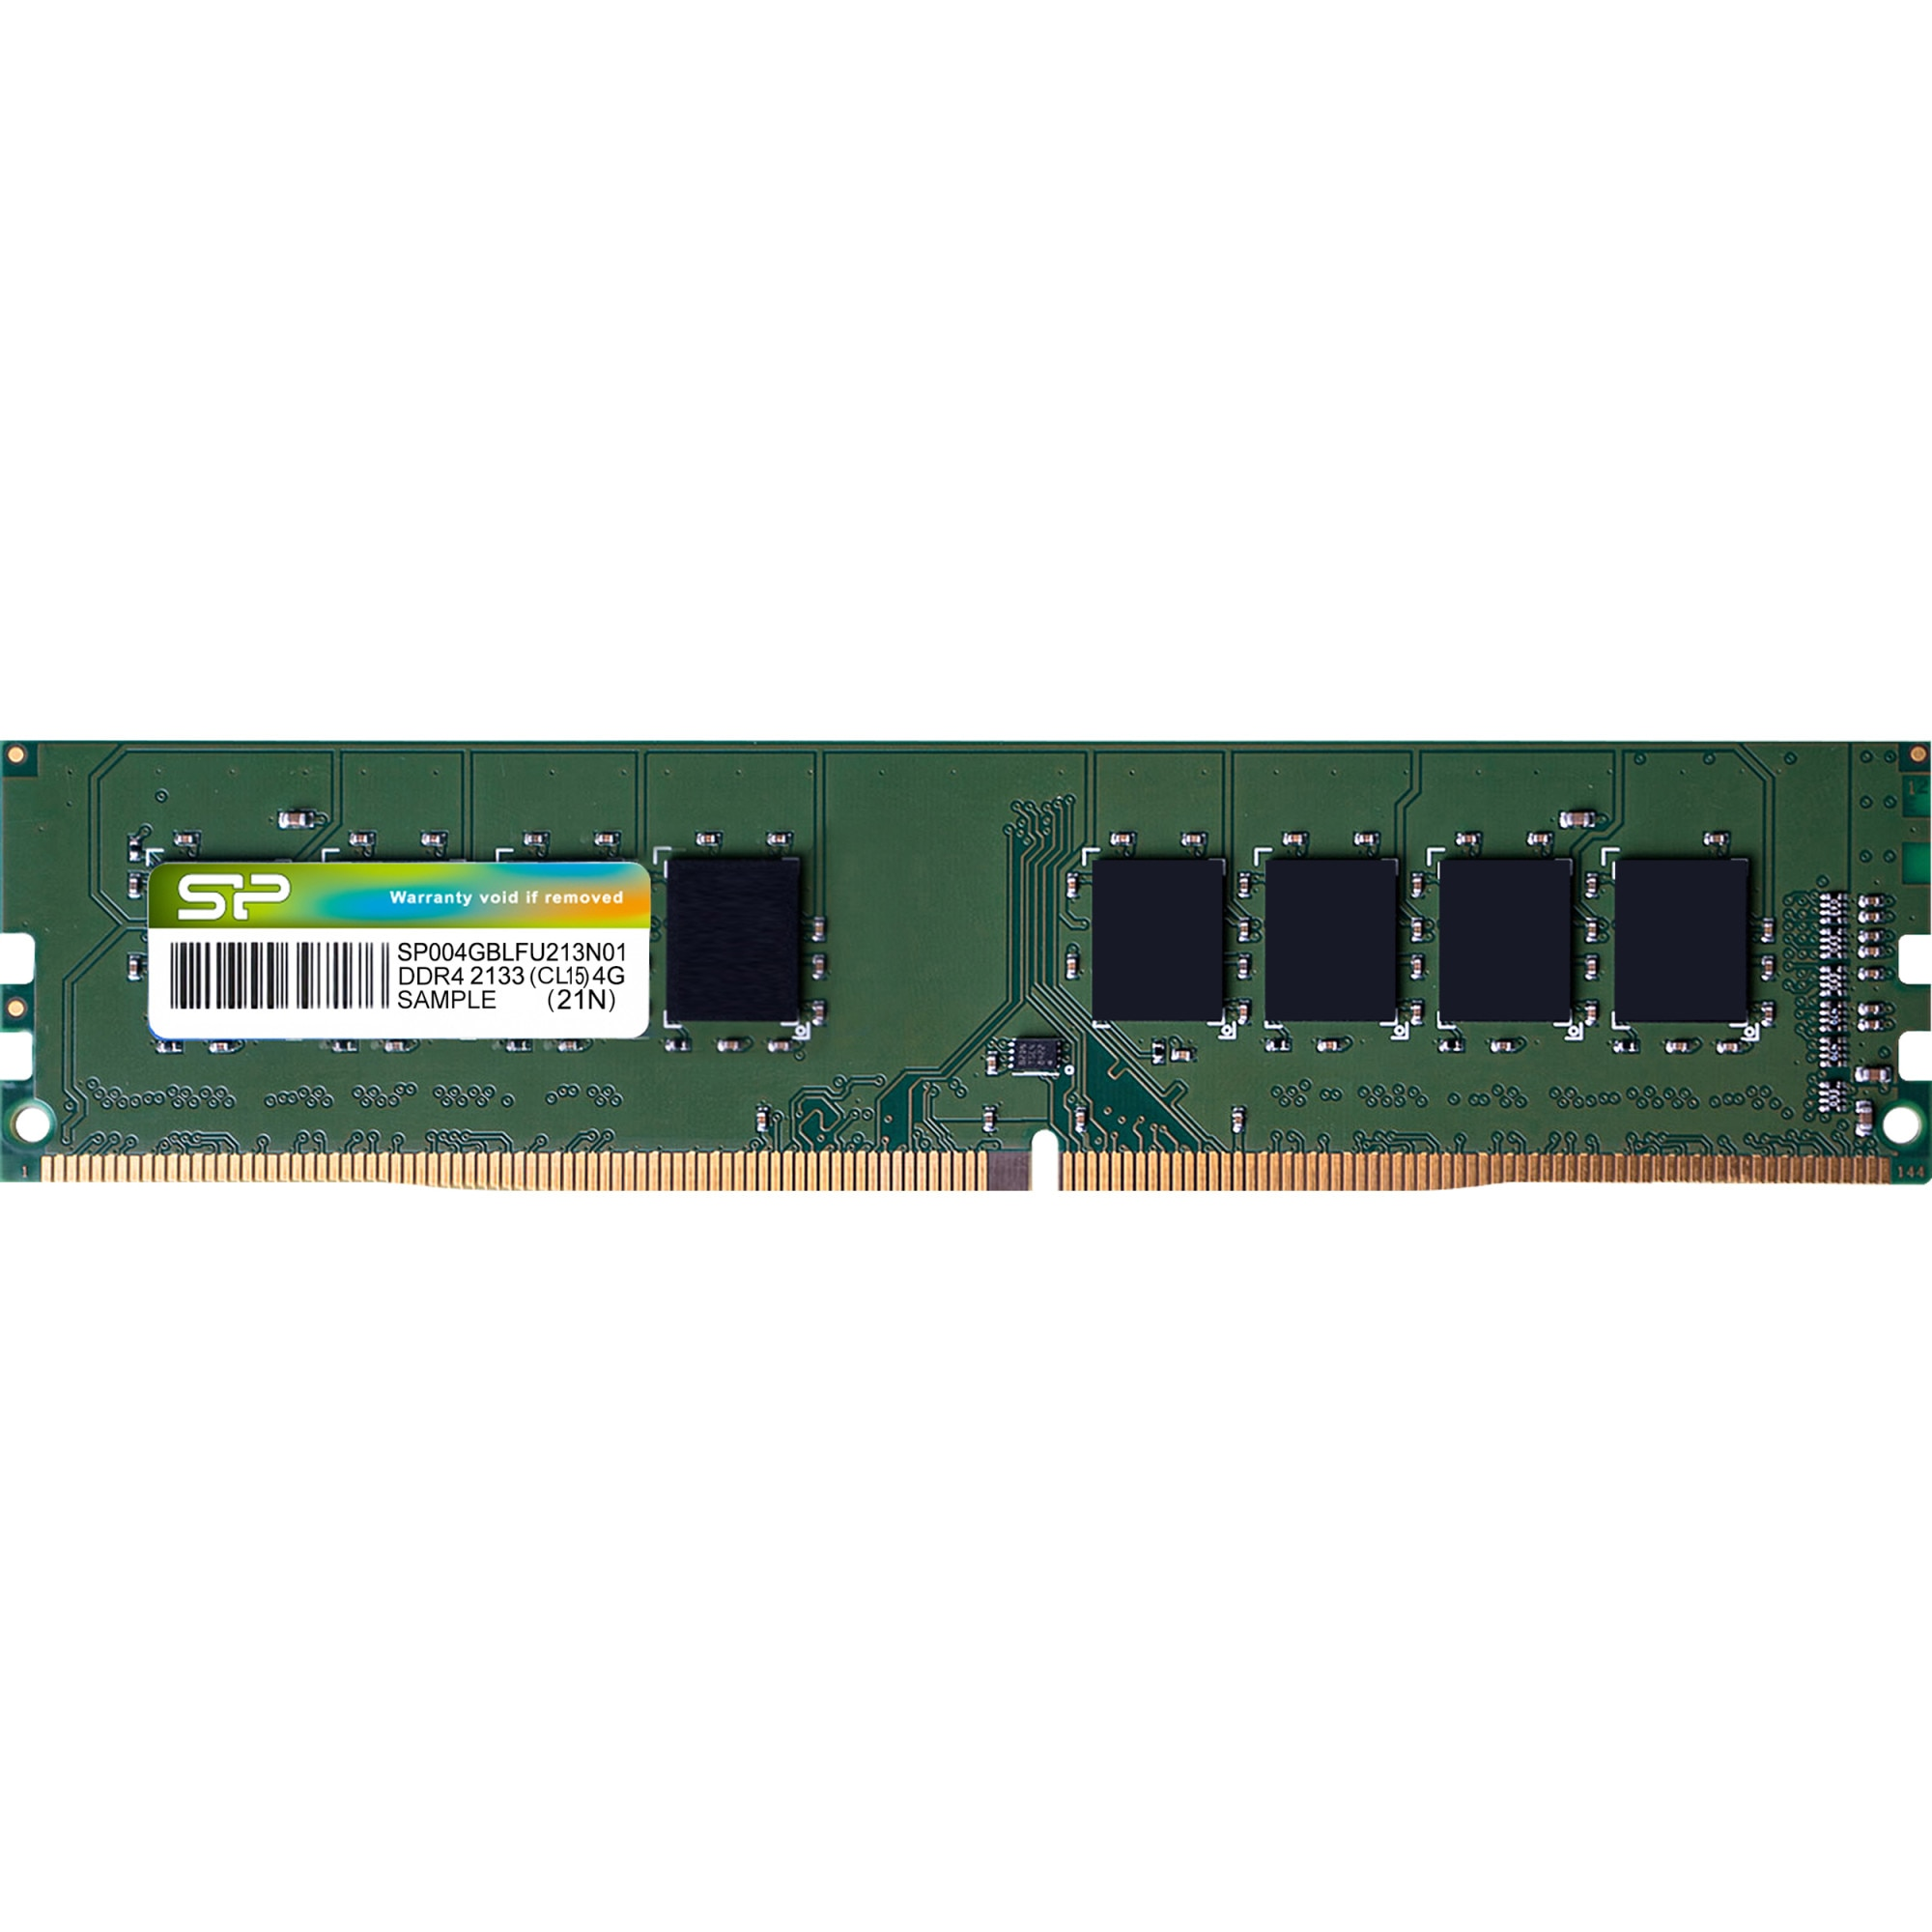 Fotografie Memorie Silicon Power 16GB DDR, 2666 Mhz, Cl19, UDIMM